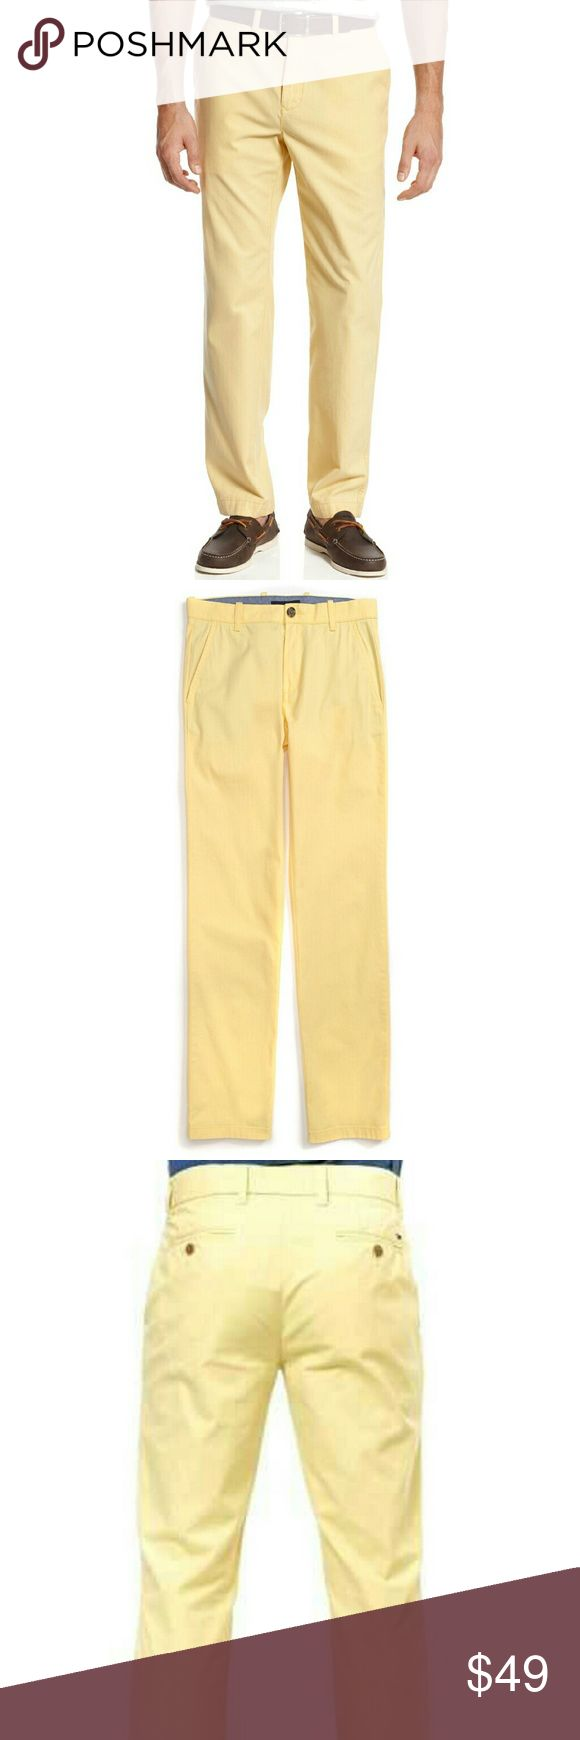 NWT Tommy Hilfiger Yellow Custom Fit Chino Pant 36 NWT-RETAIL. Light yellow, custom fit Tommy Hilfiger Chino Pants.  Size 36W. 100% cotton. Sits  below waist and slimmer through leg. DISCOUNTED BUNDLES. Reasonable offers welcome! Tommy Hilfiger Pants Chinos & Khakis